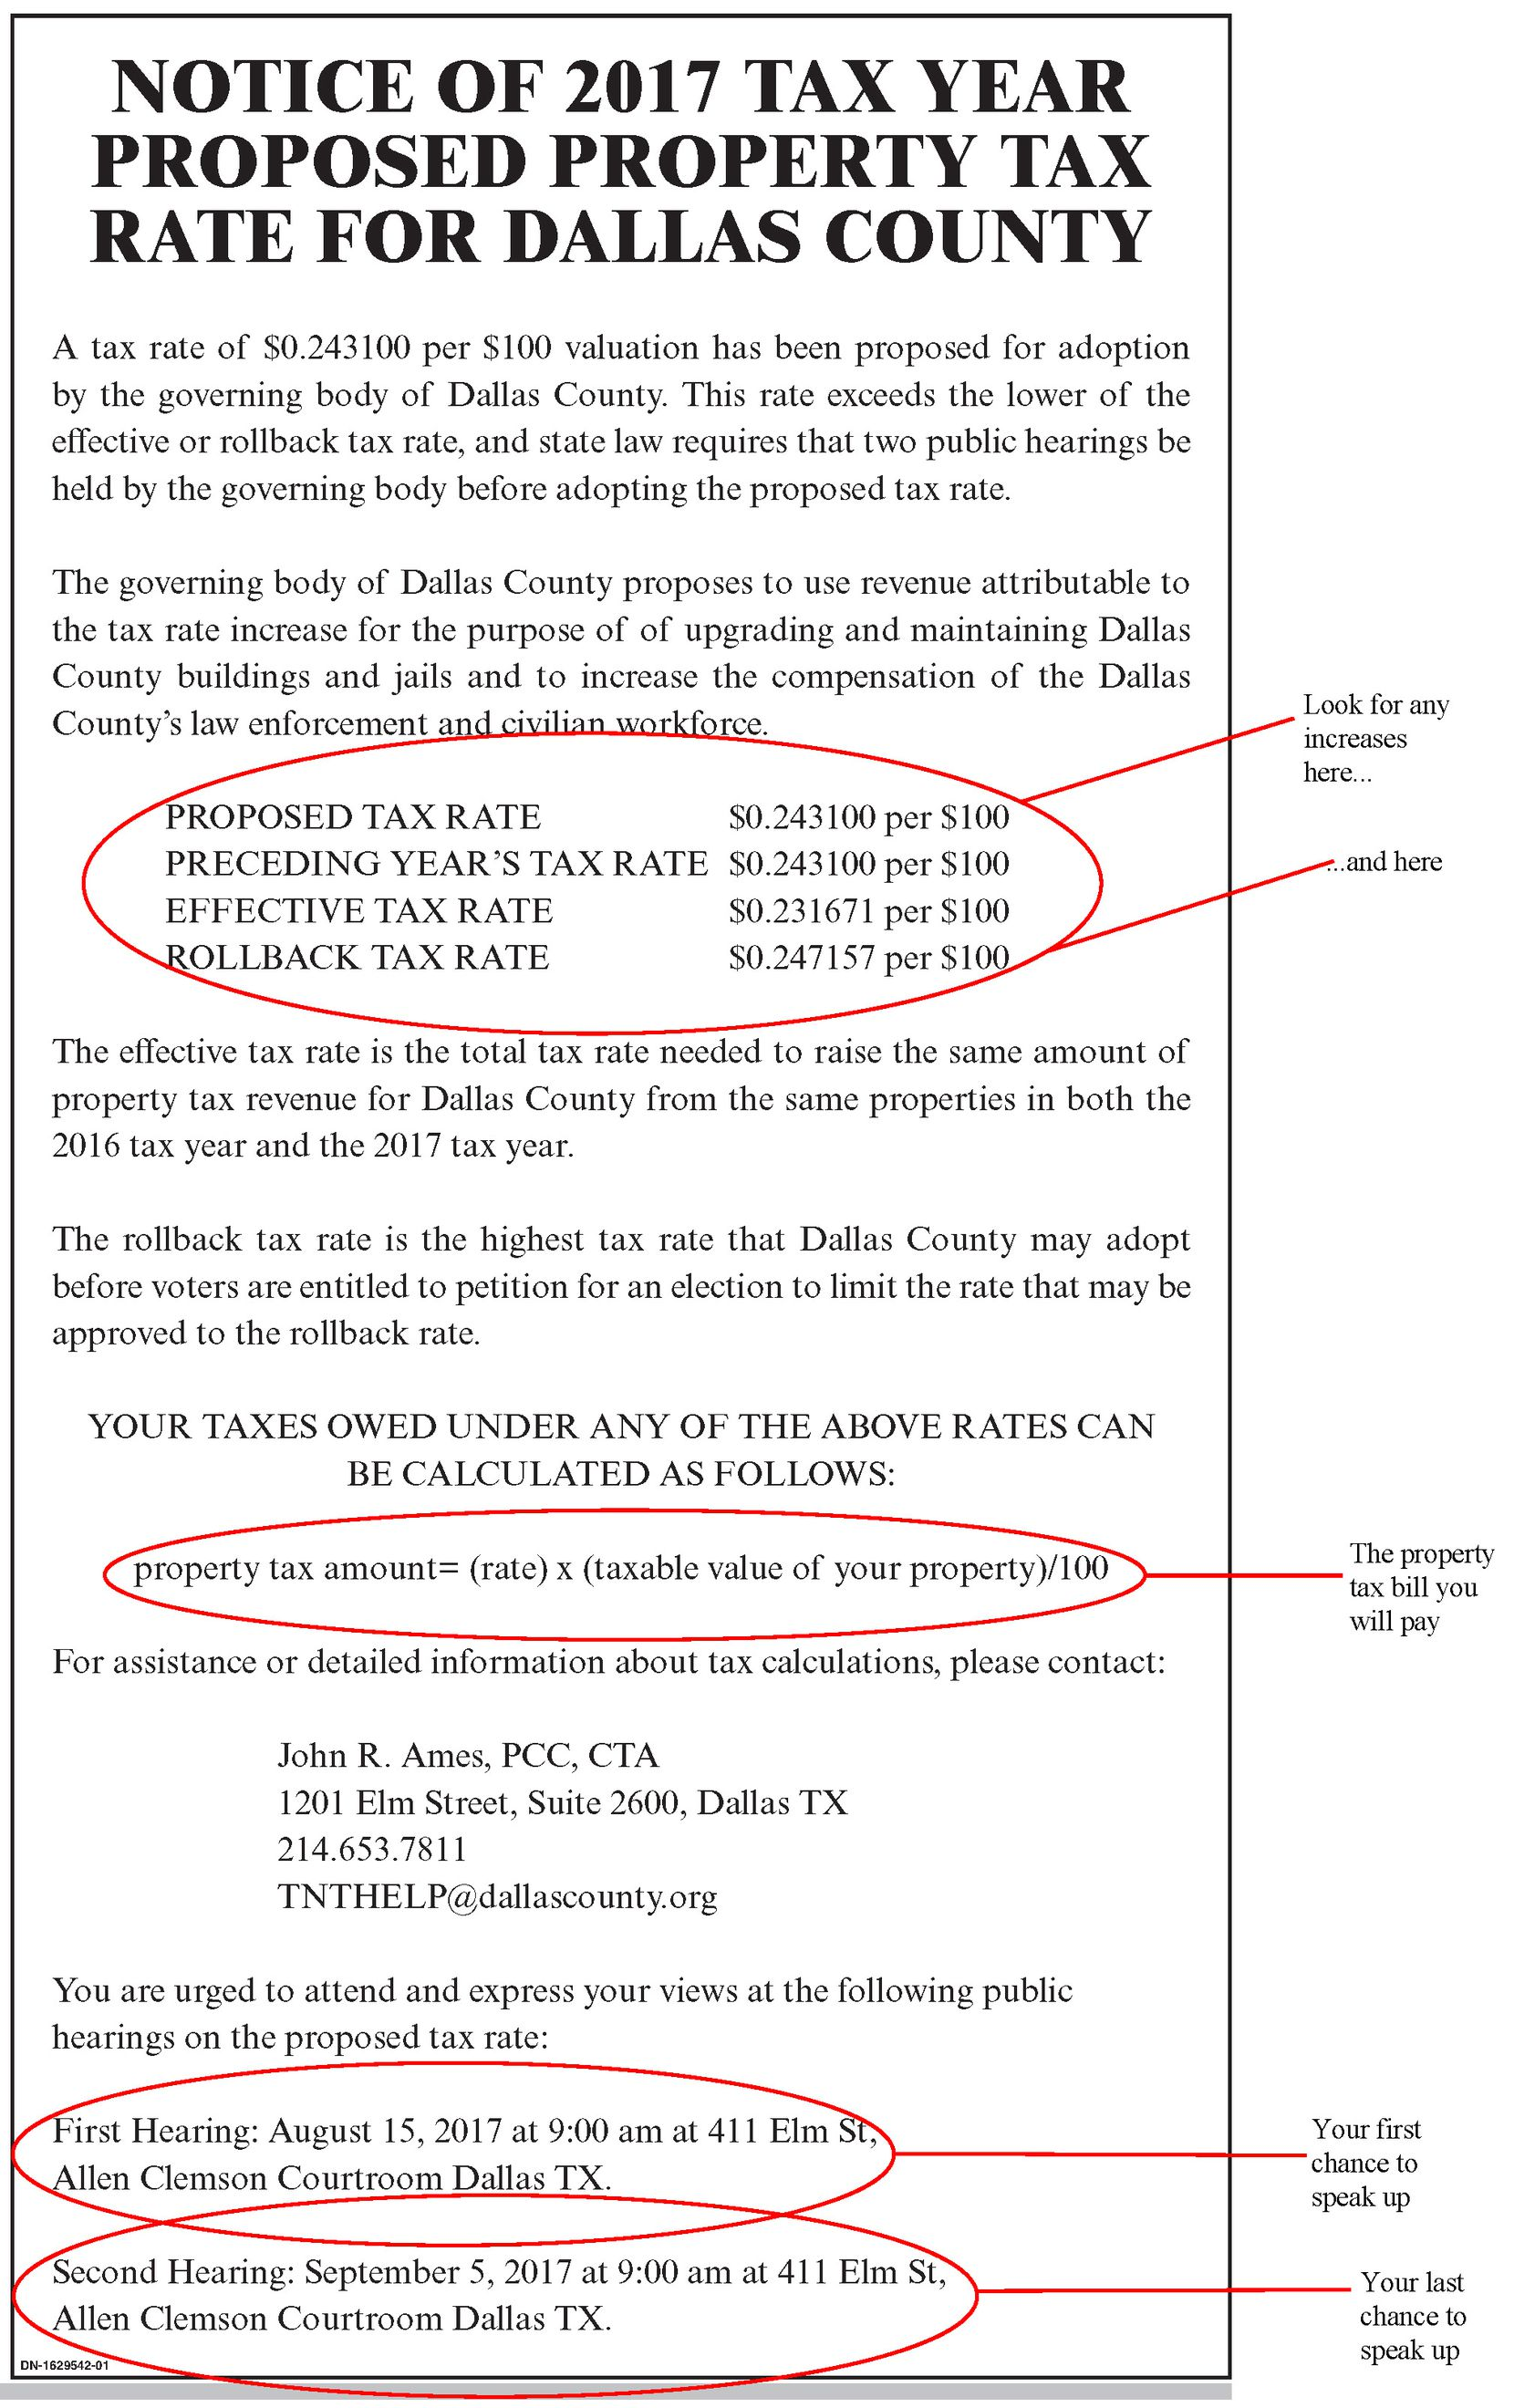 The Watchdog shows how to read a property tax rate notice using, as an example, this 2017 notice from Dallas County.